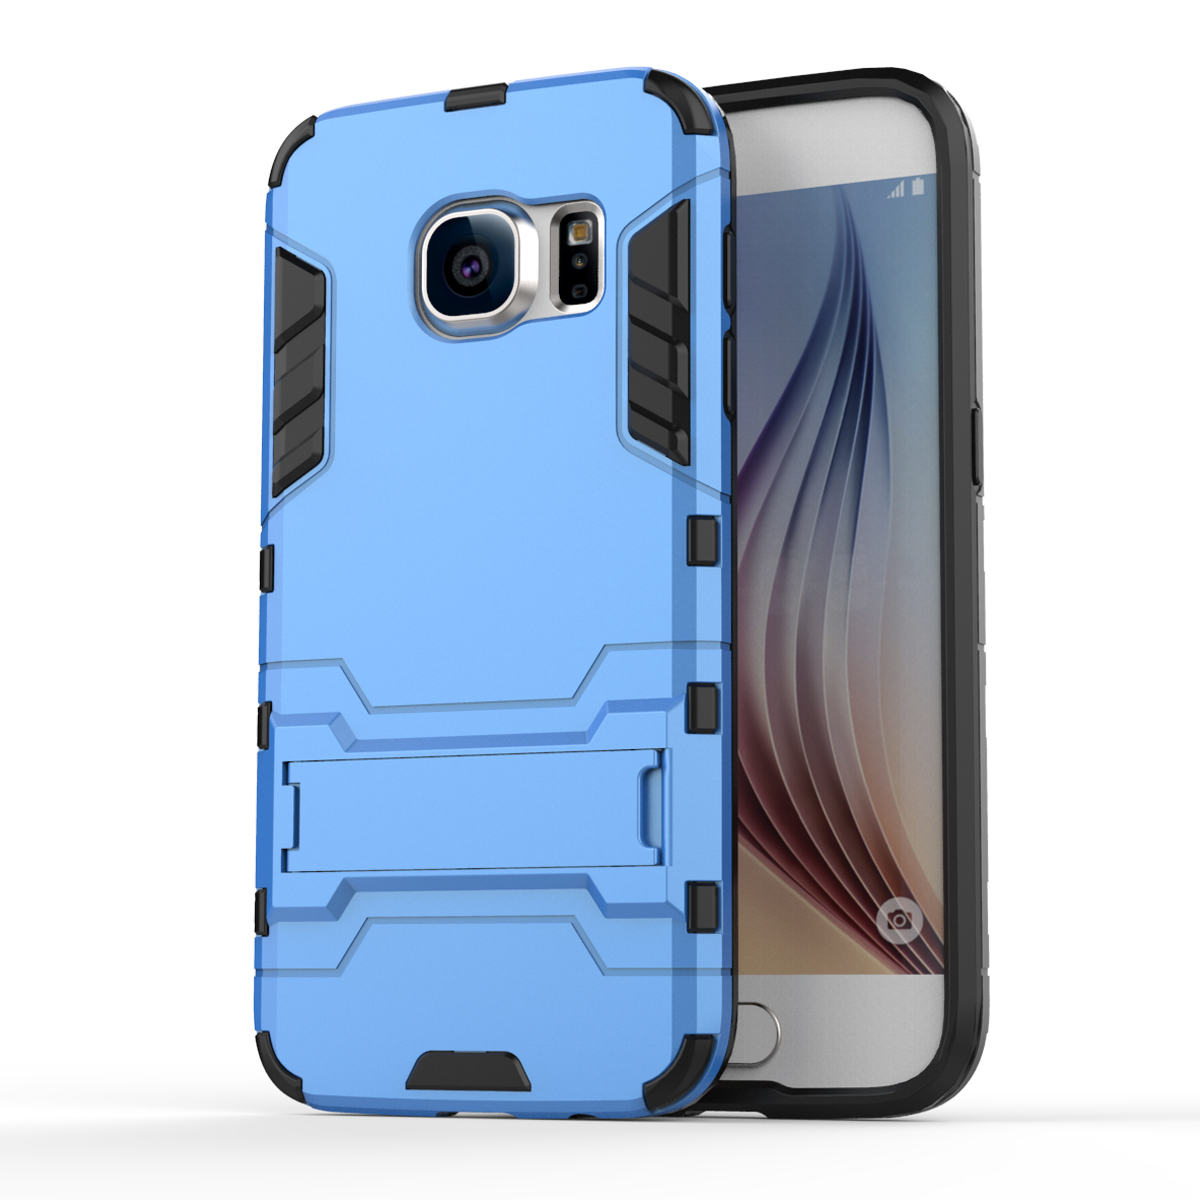 Armor Case for Samsung Galaxy S7 G9300 Heavy Duty Hybrid Hard Soft Rugged Silicone Rubber Phone Cover Coque + Stand Function (